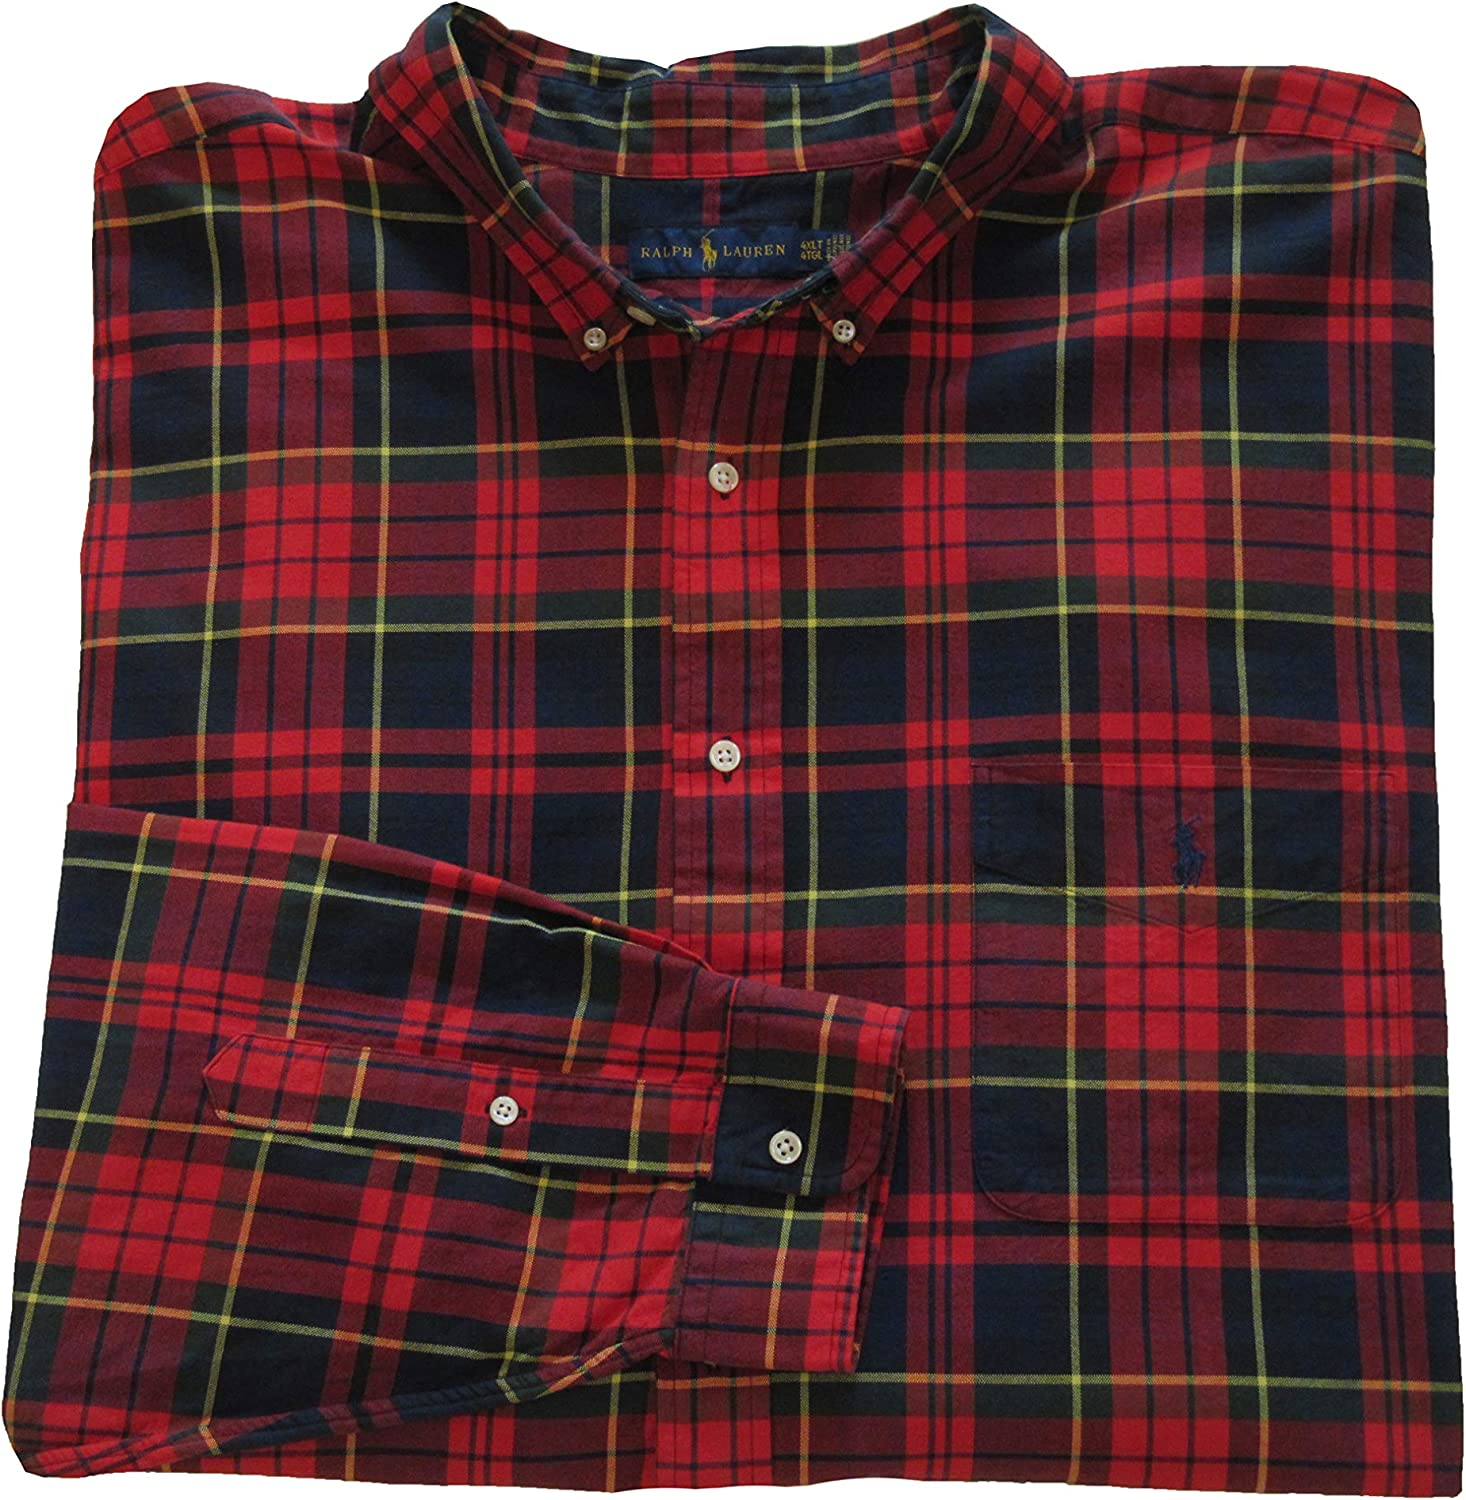 Ralph Lauren Polo Mens Big and Tall Classic Fit Plaid Oxford Shirt